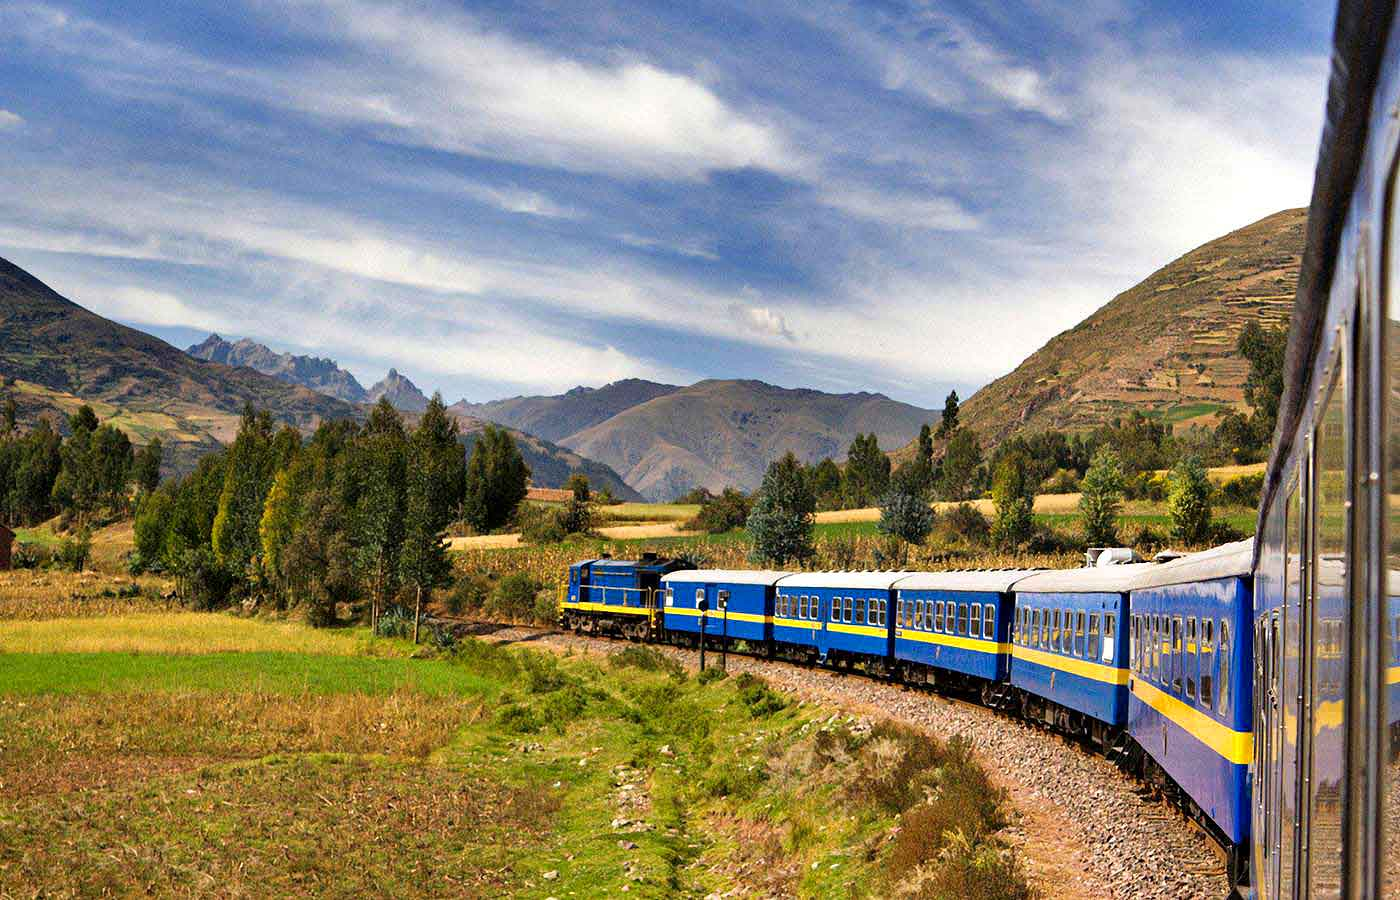 Take the train to Machu Picchu on a luxury holiday to Peru